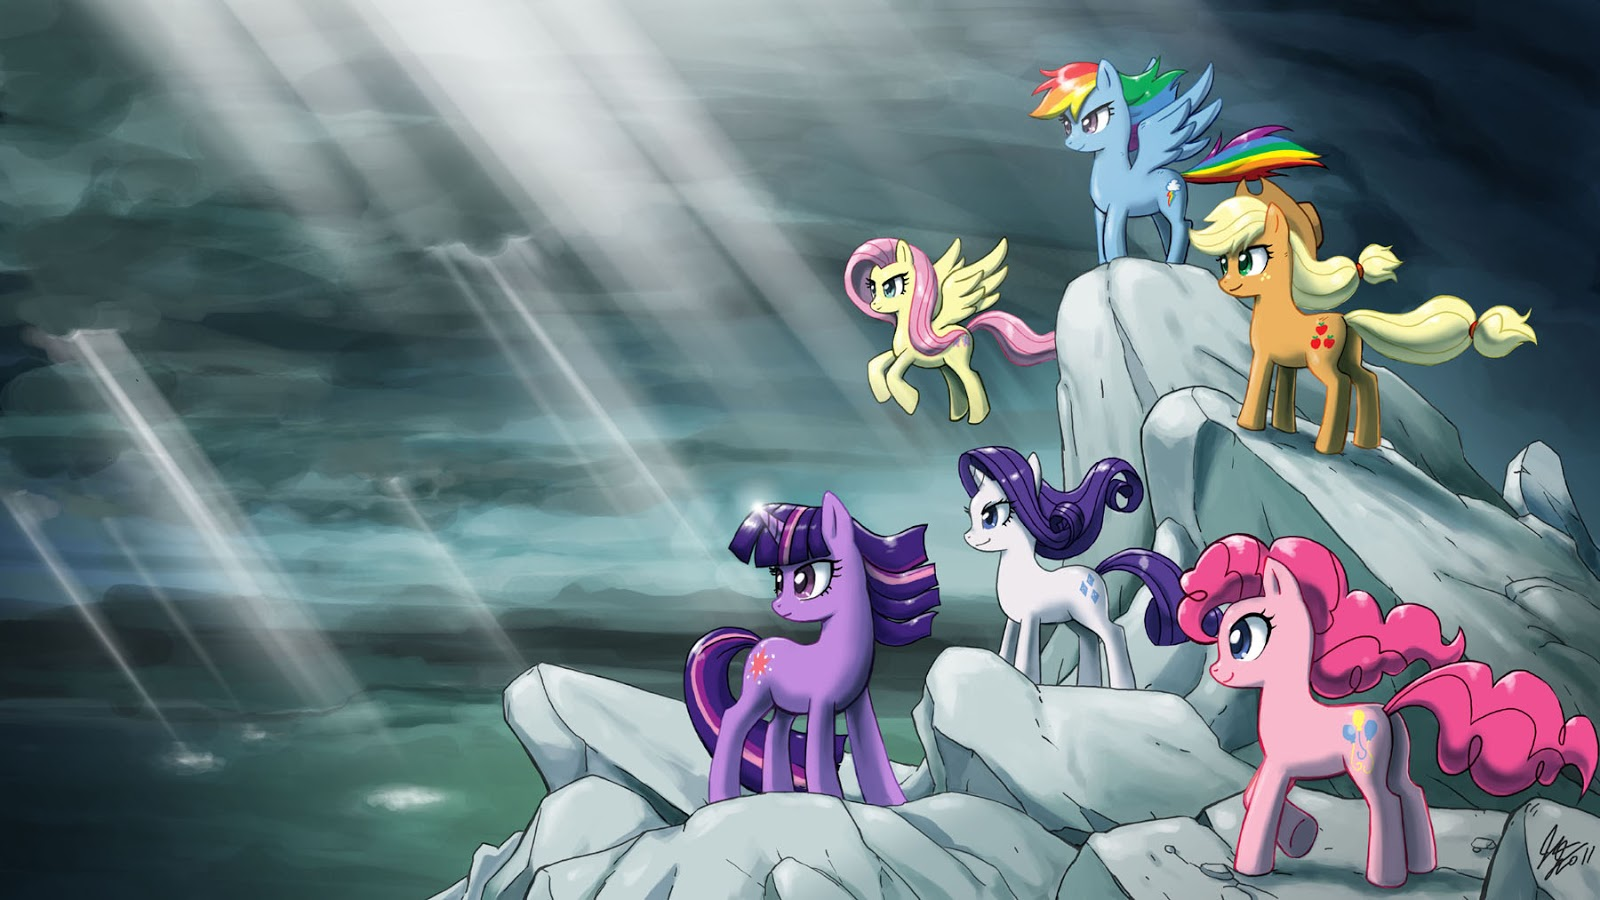 Equestria Daily - MLP Stuff!: Poll Results: Would You Like